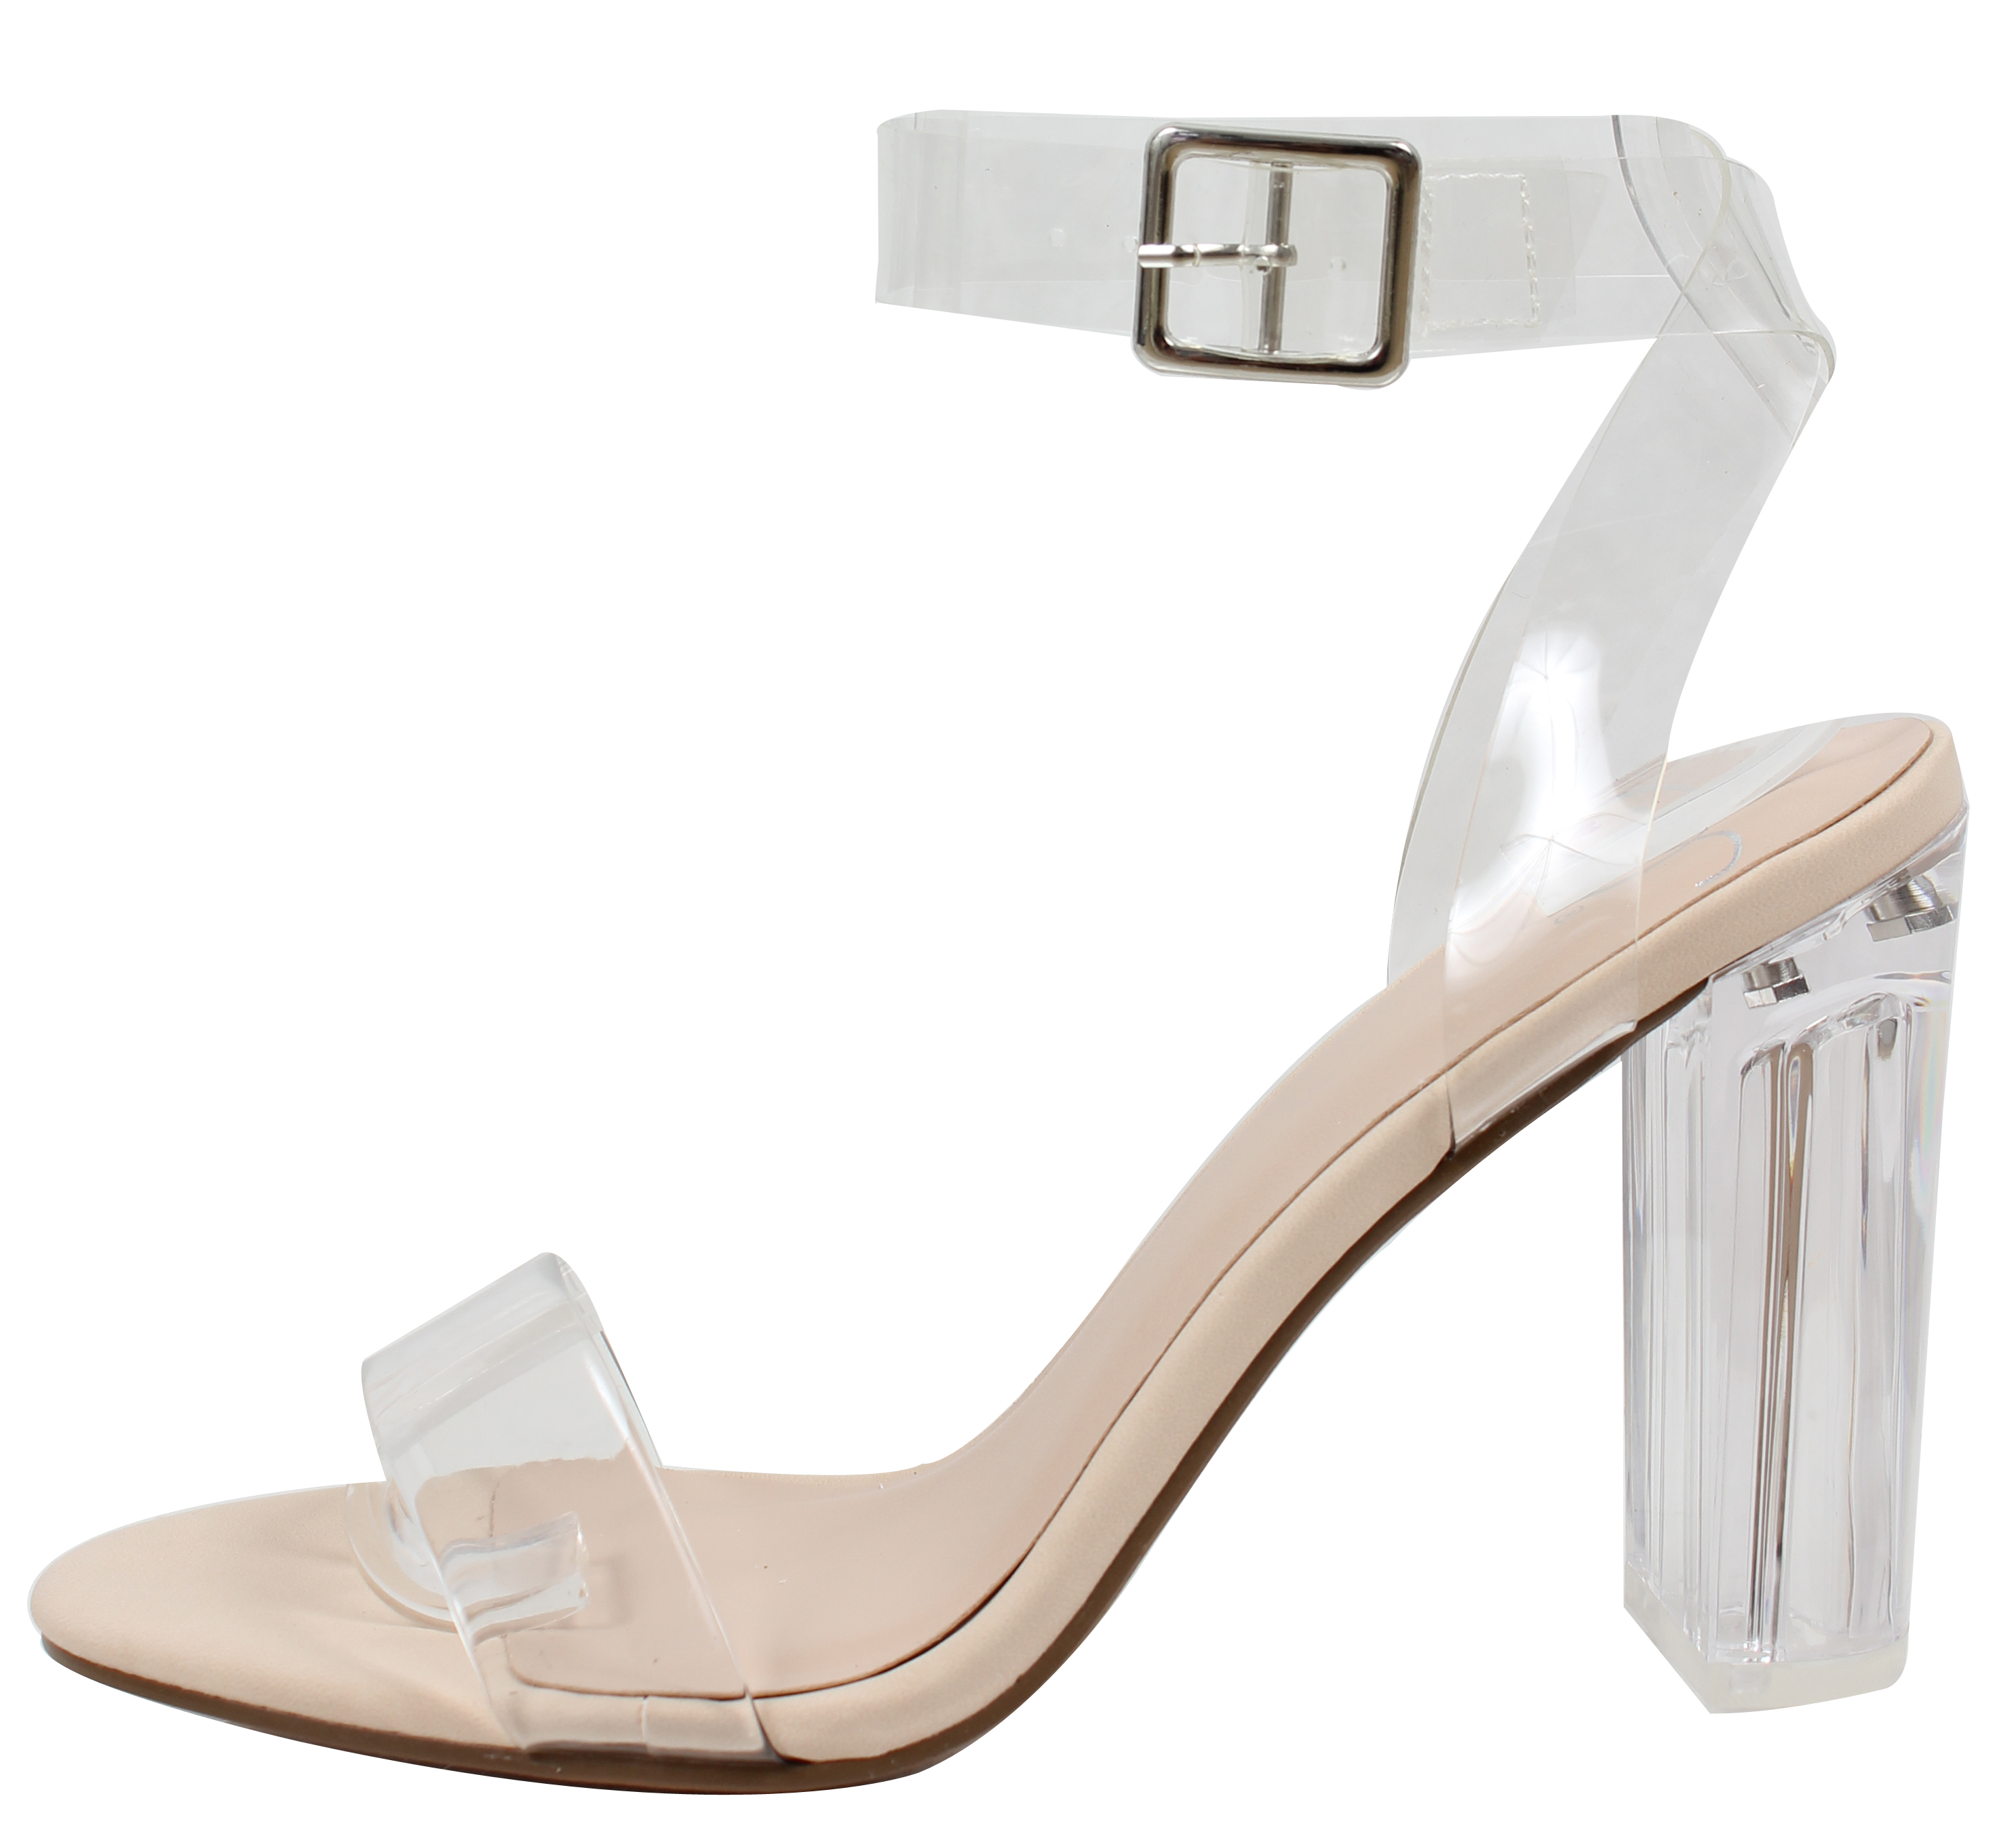 3c851f72671 Delicious - Delicious Women s Cinderella Clear Ankle Straps Perspex Lucite  Clear Block Heel Sandal (Black